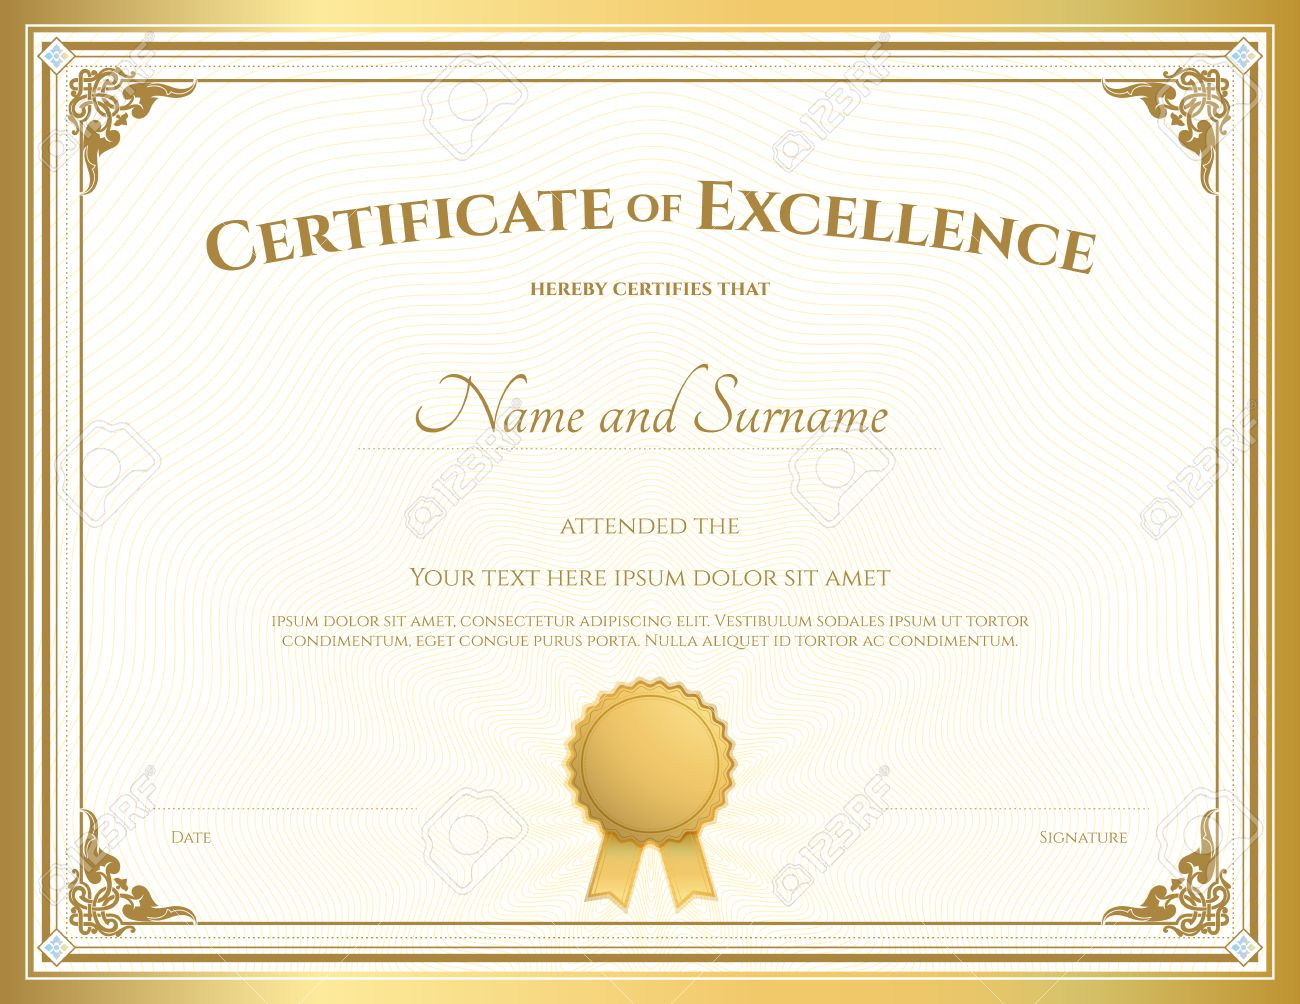 Certificate of appreciation en francais images certificate certificate of appreciation template with vintage gold border certificate of appreciation template with vintage gold border yelopaper Choice Image